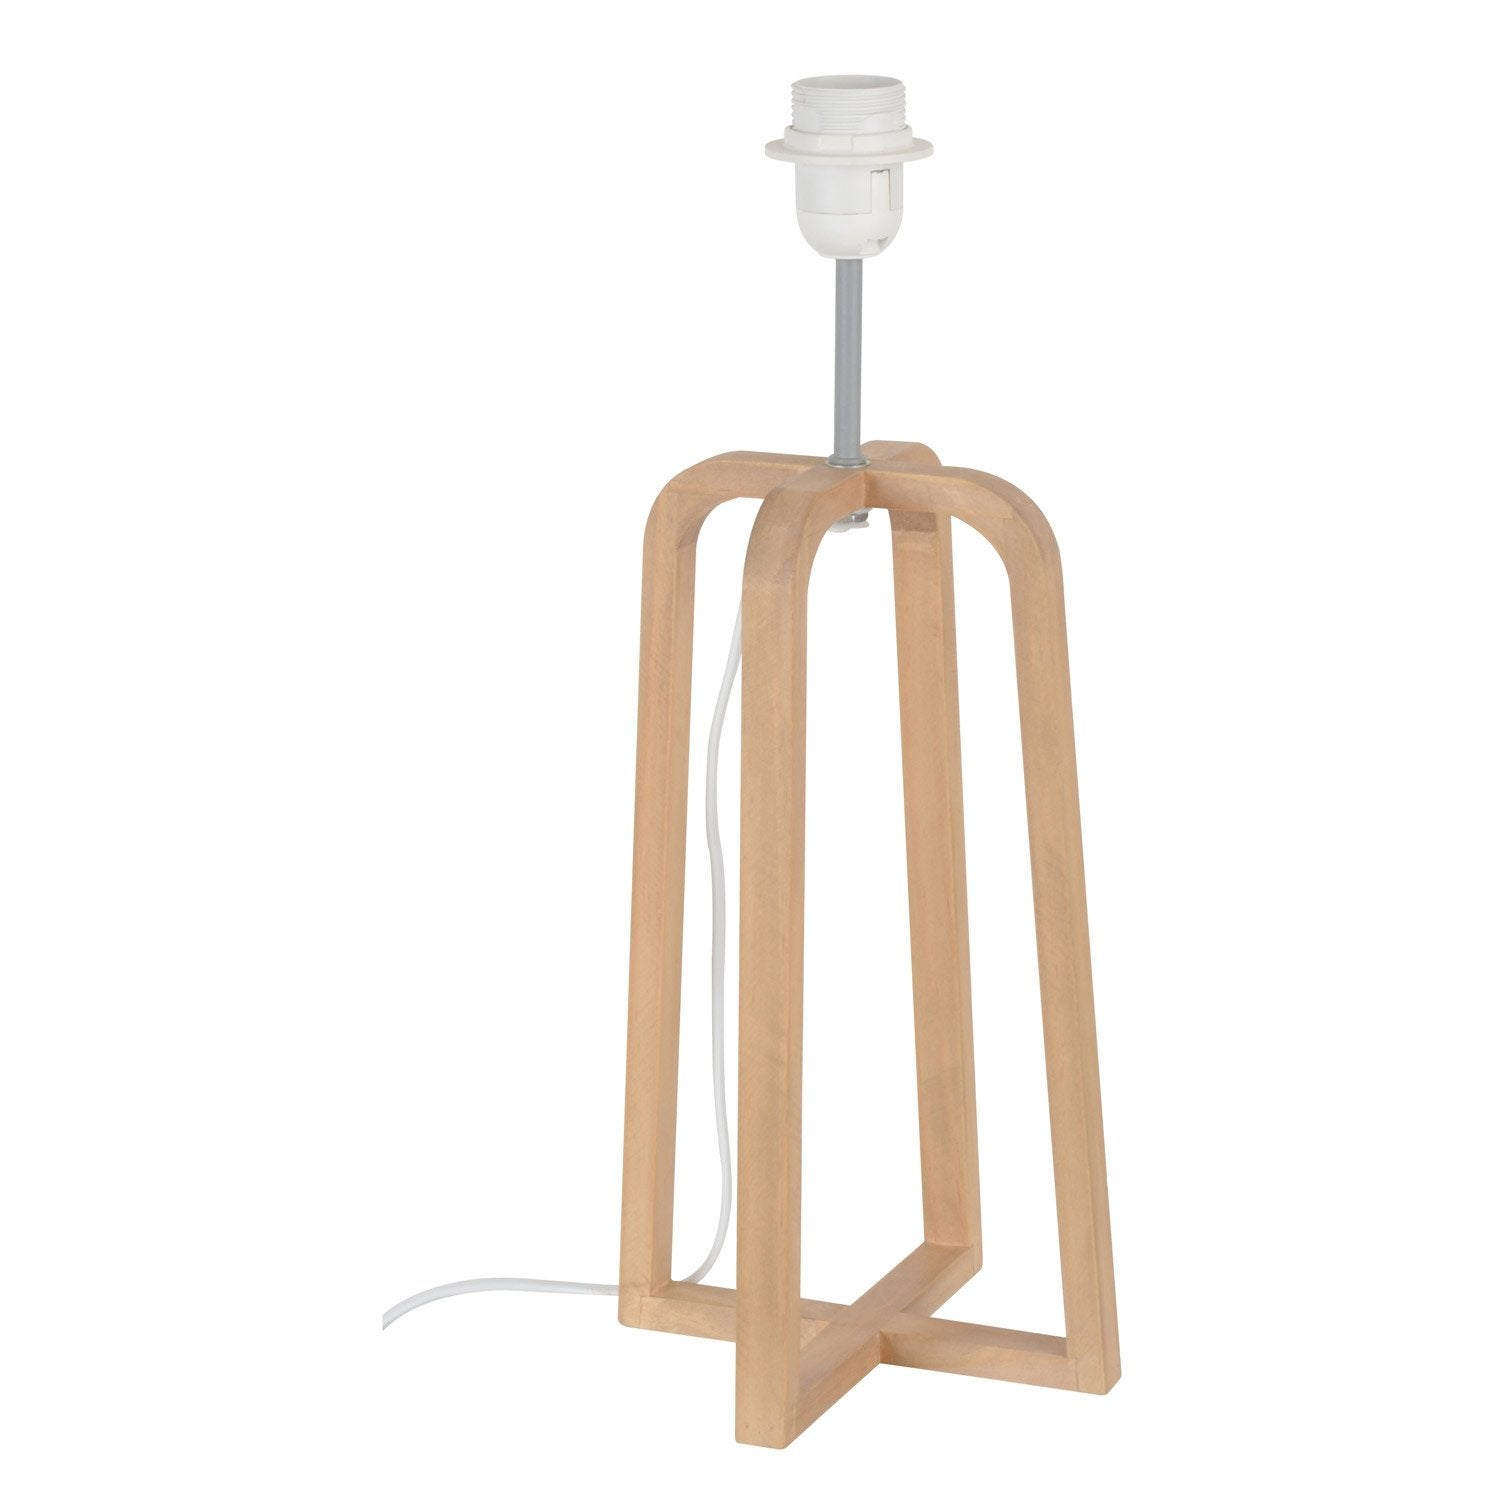 Pied de lampe scandinave bois naturel 46 cm leroy merlin - Pied de table basse leroy merlin ...